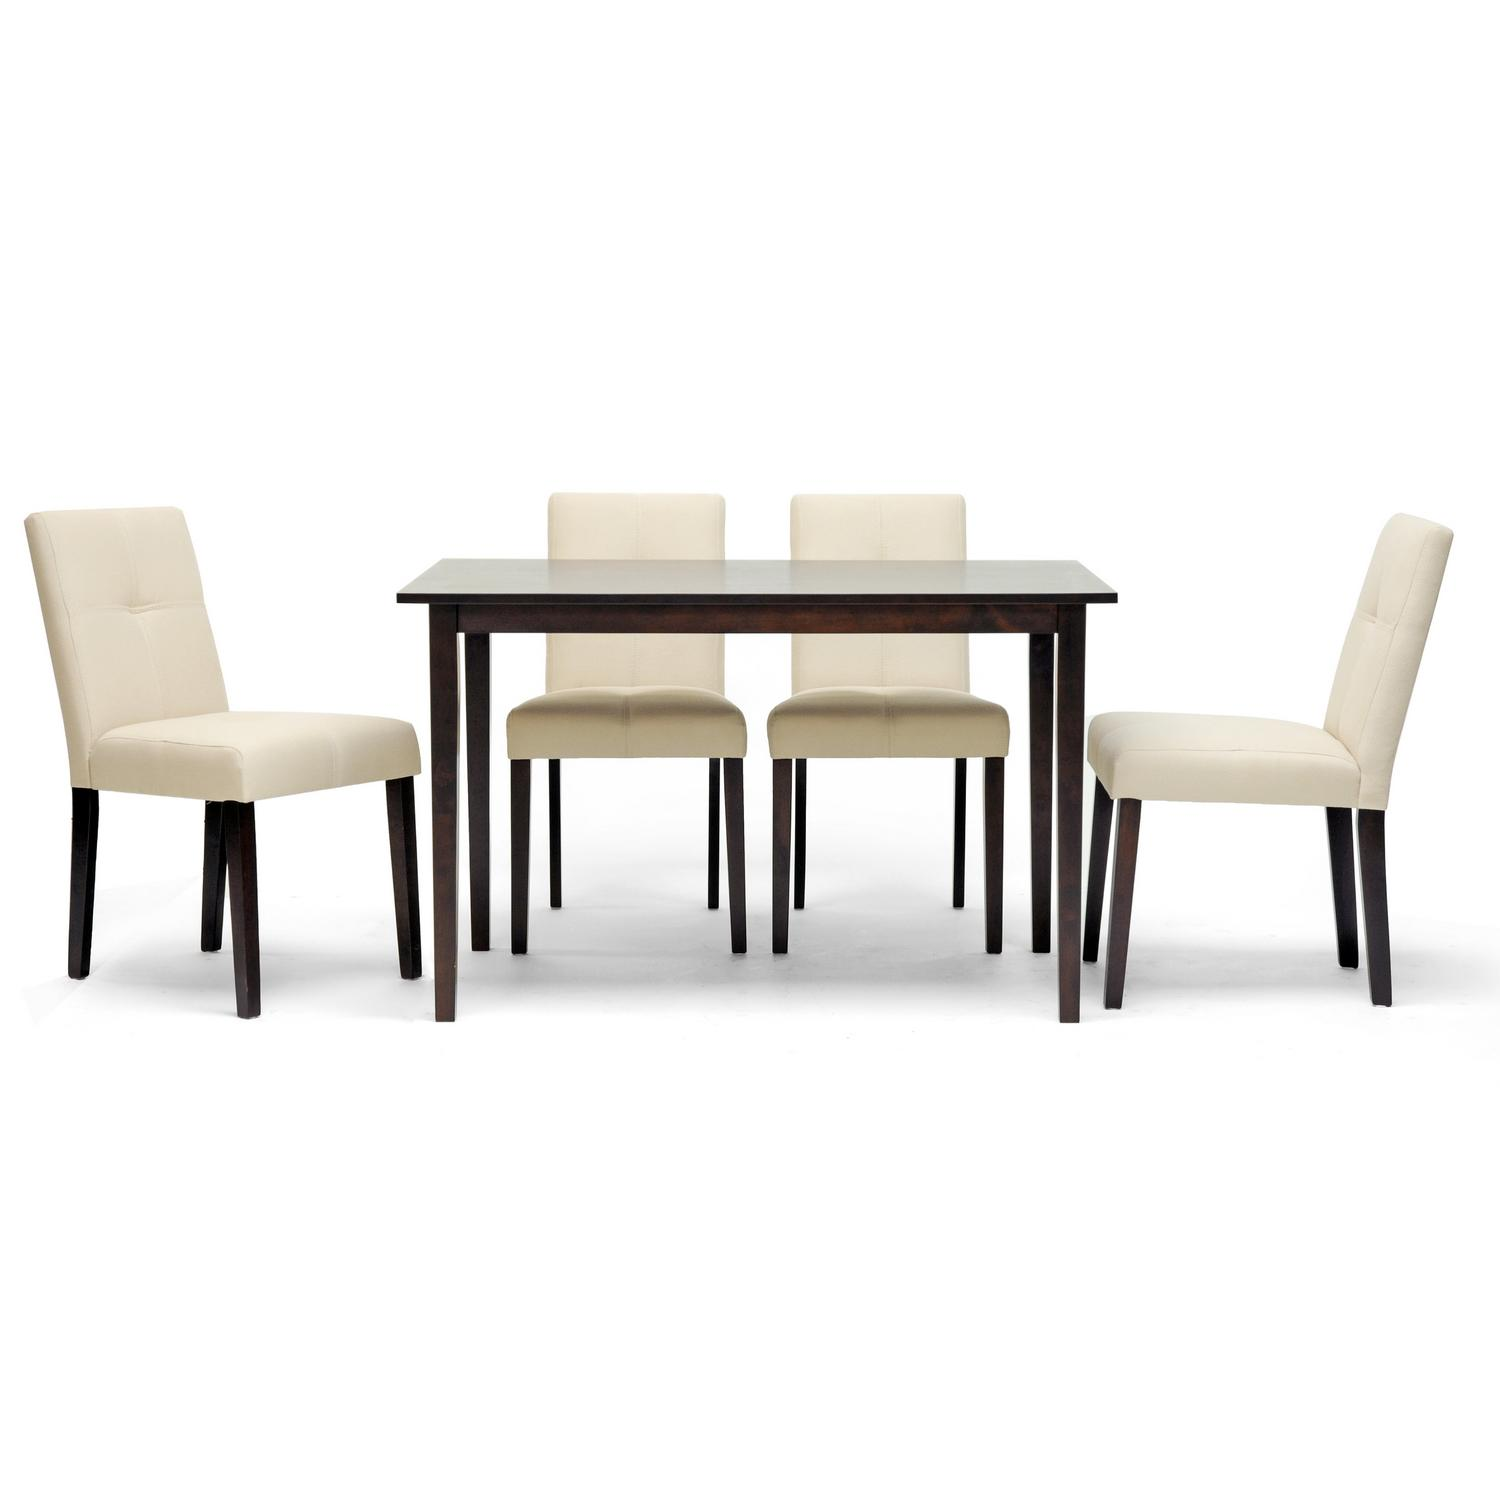 Baxton Elsa Brown Wood 5-Piece Modern Dining Set at Sears.com